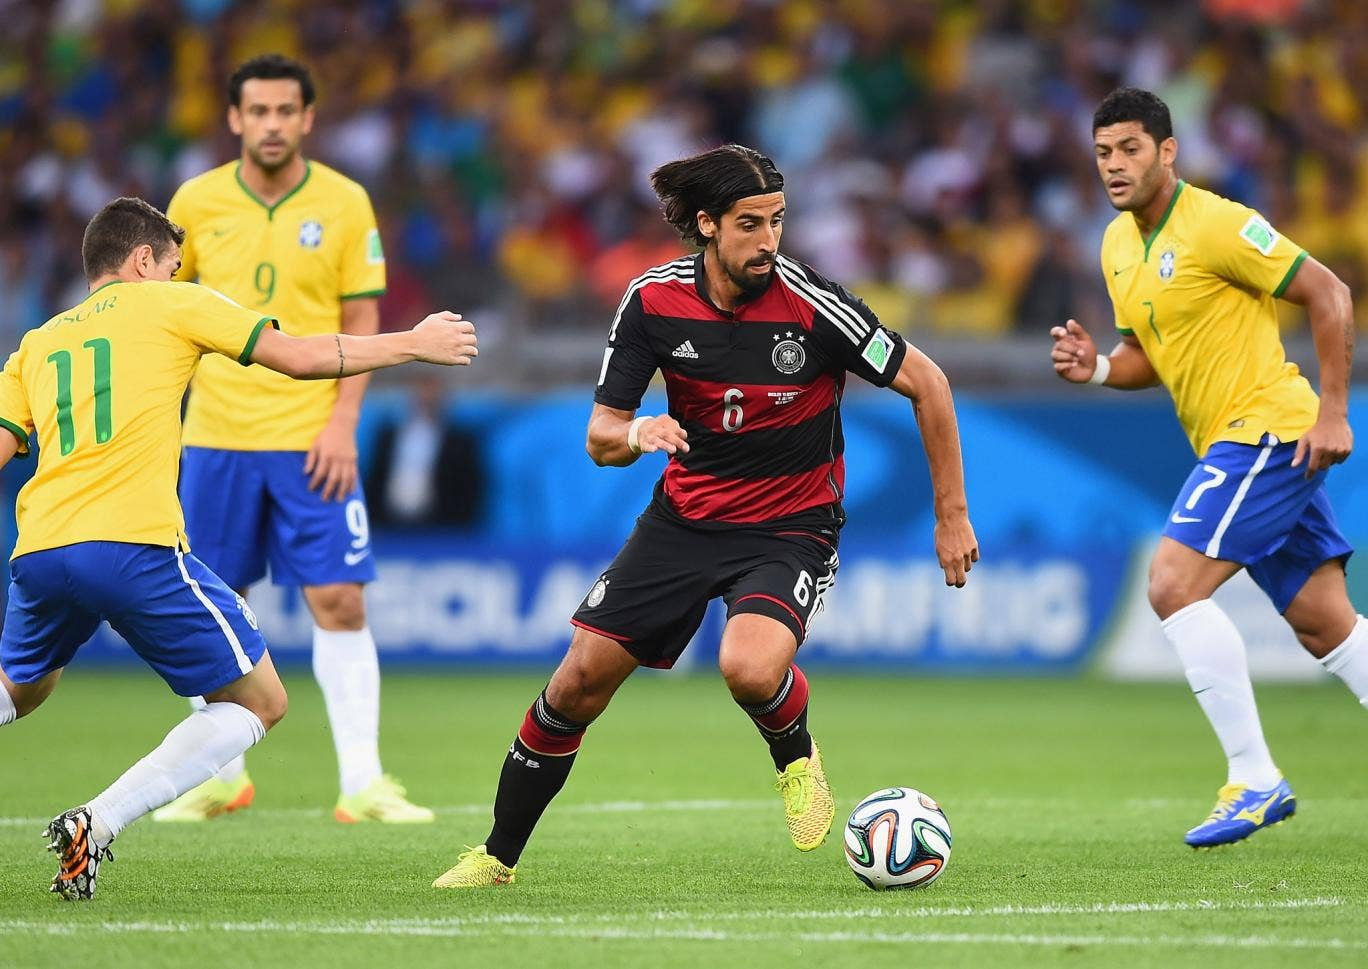 Sami Khedira of Germany runs past Oscar of Brazil with the ball during the 2014 FIFA World Cup Brazil Semi Final match between Brazil and Germany